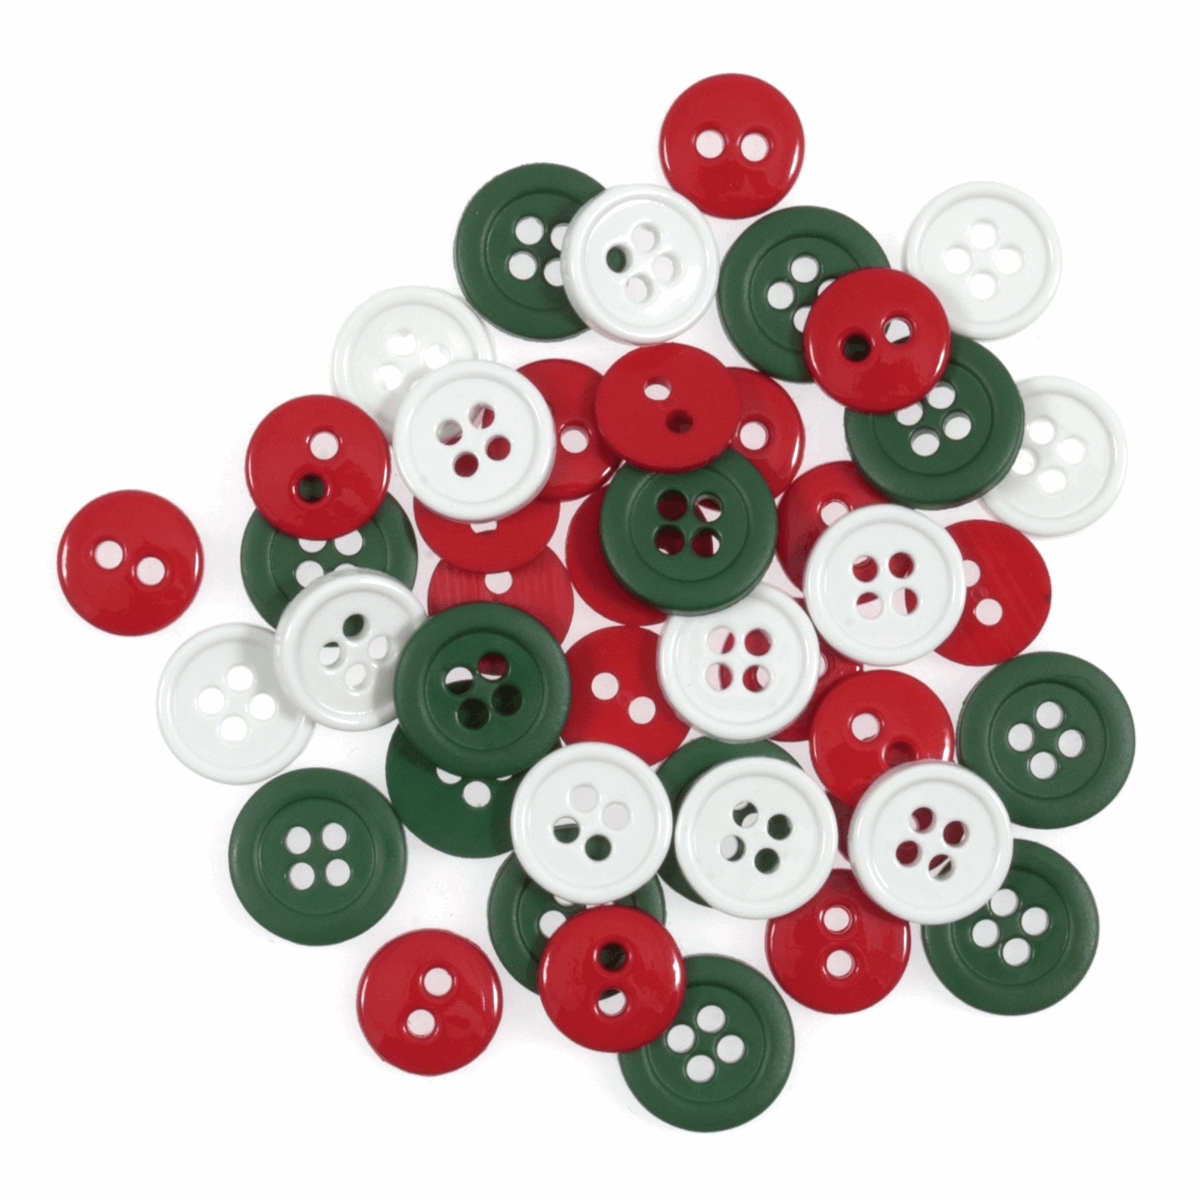 Button Assortments - Round, 12mm and 15mm, Pk of 125 approx